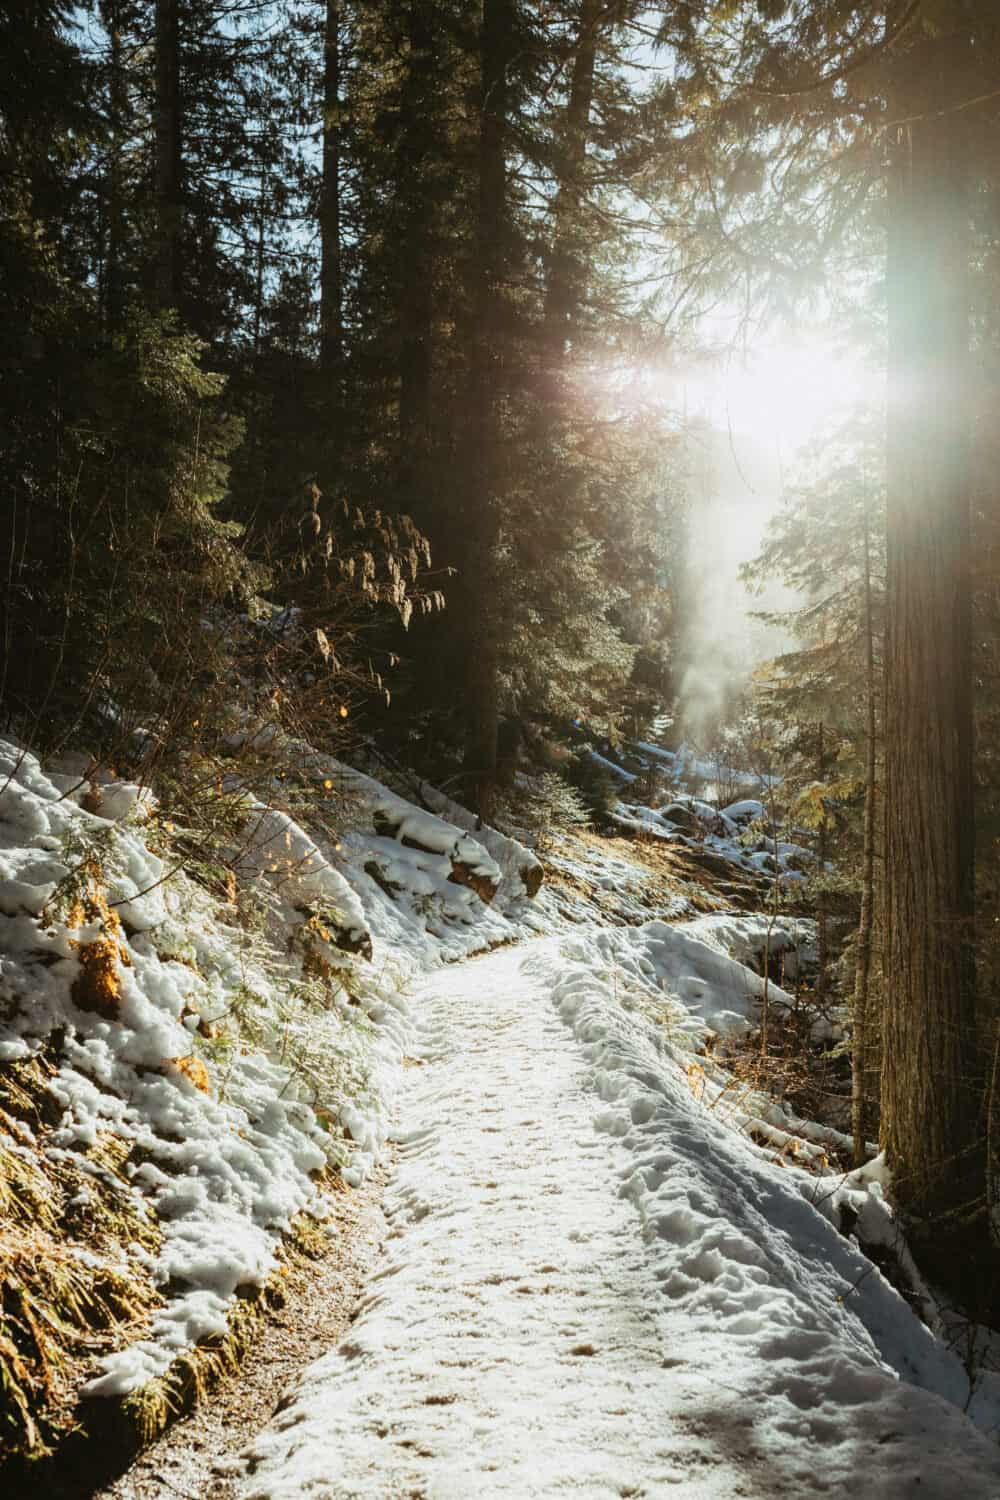 The Trail to Jerry Johnson Hotsprings